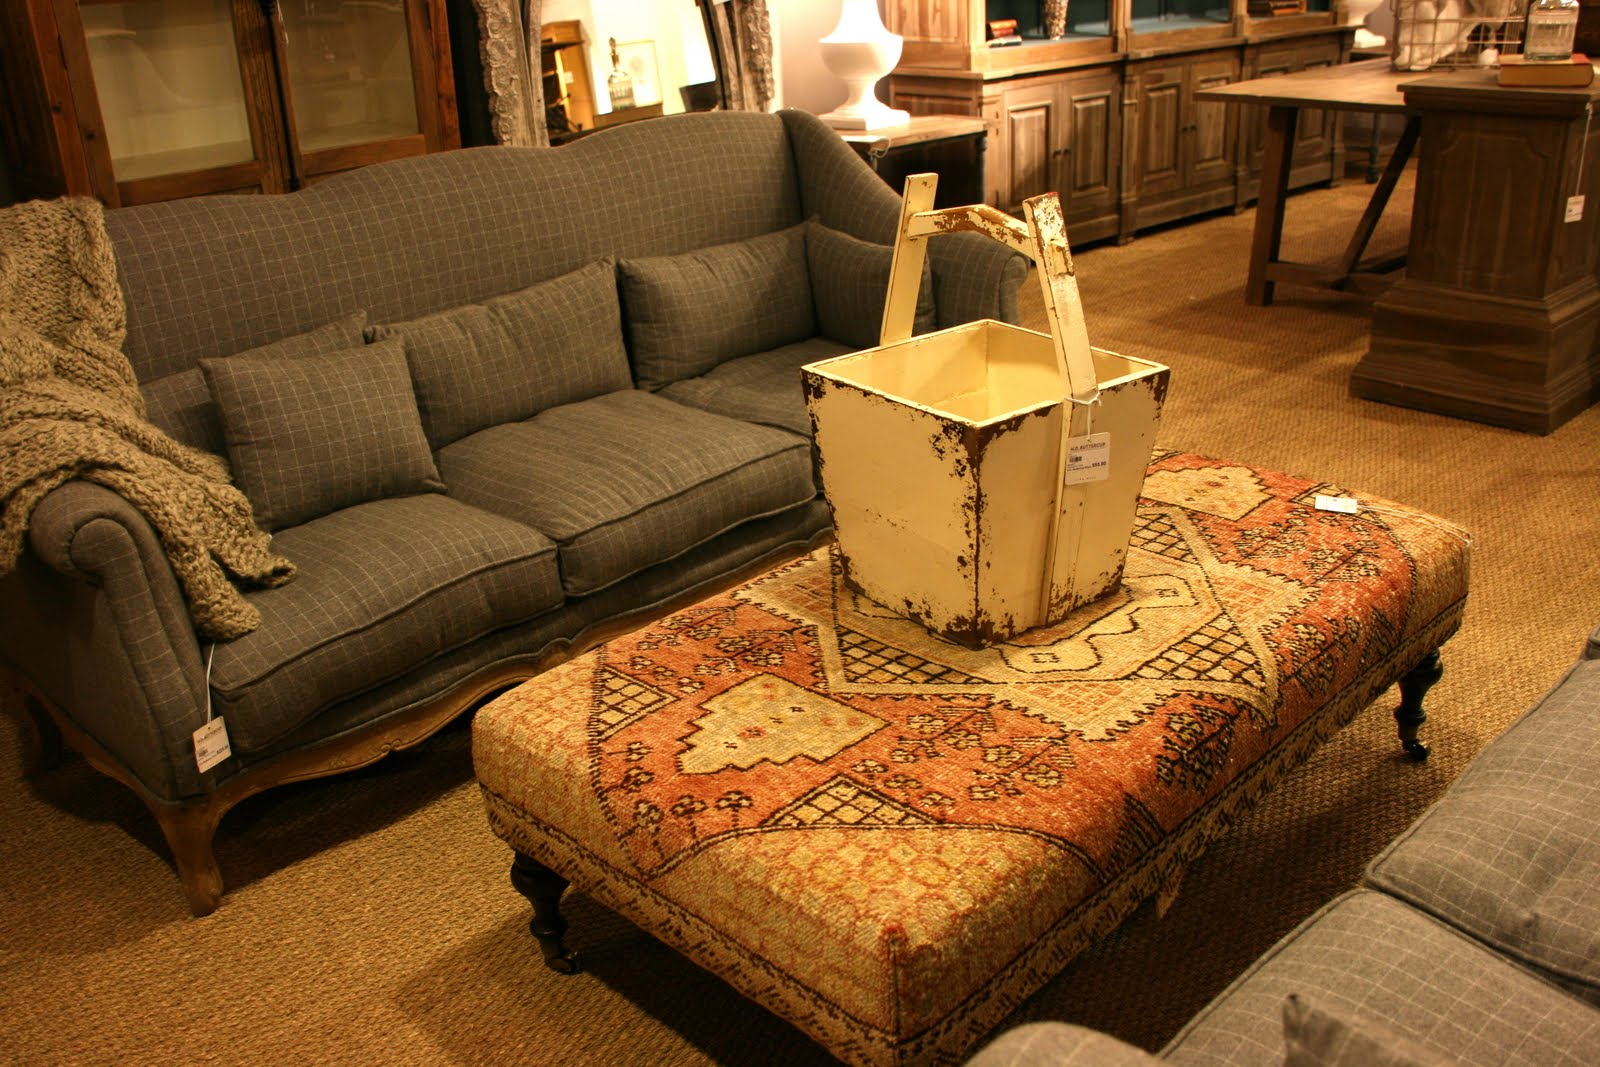 H. D. Buttercup, The Furniture Marketplace